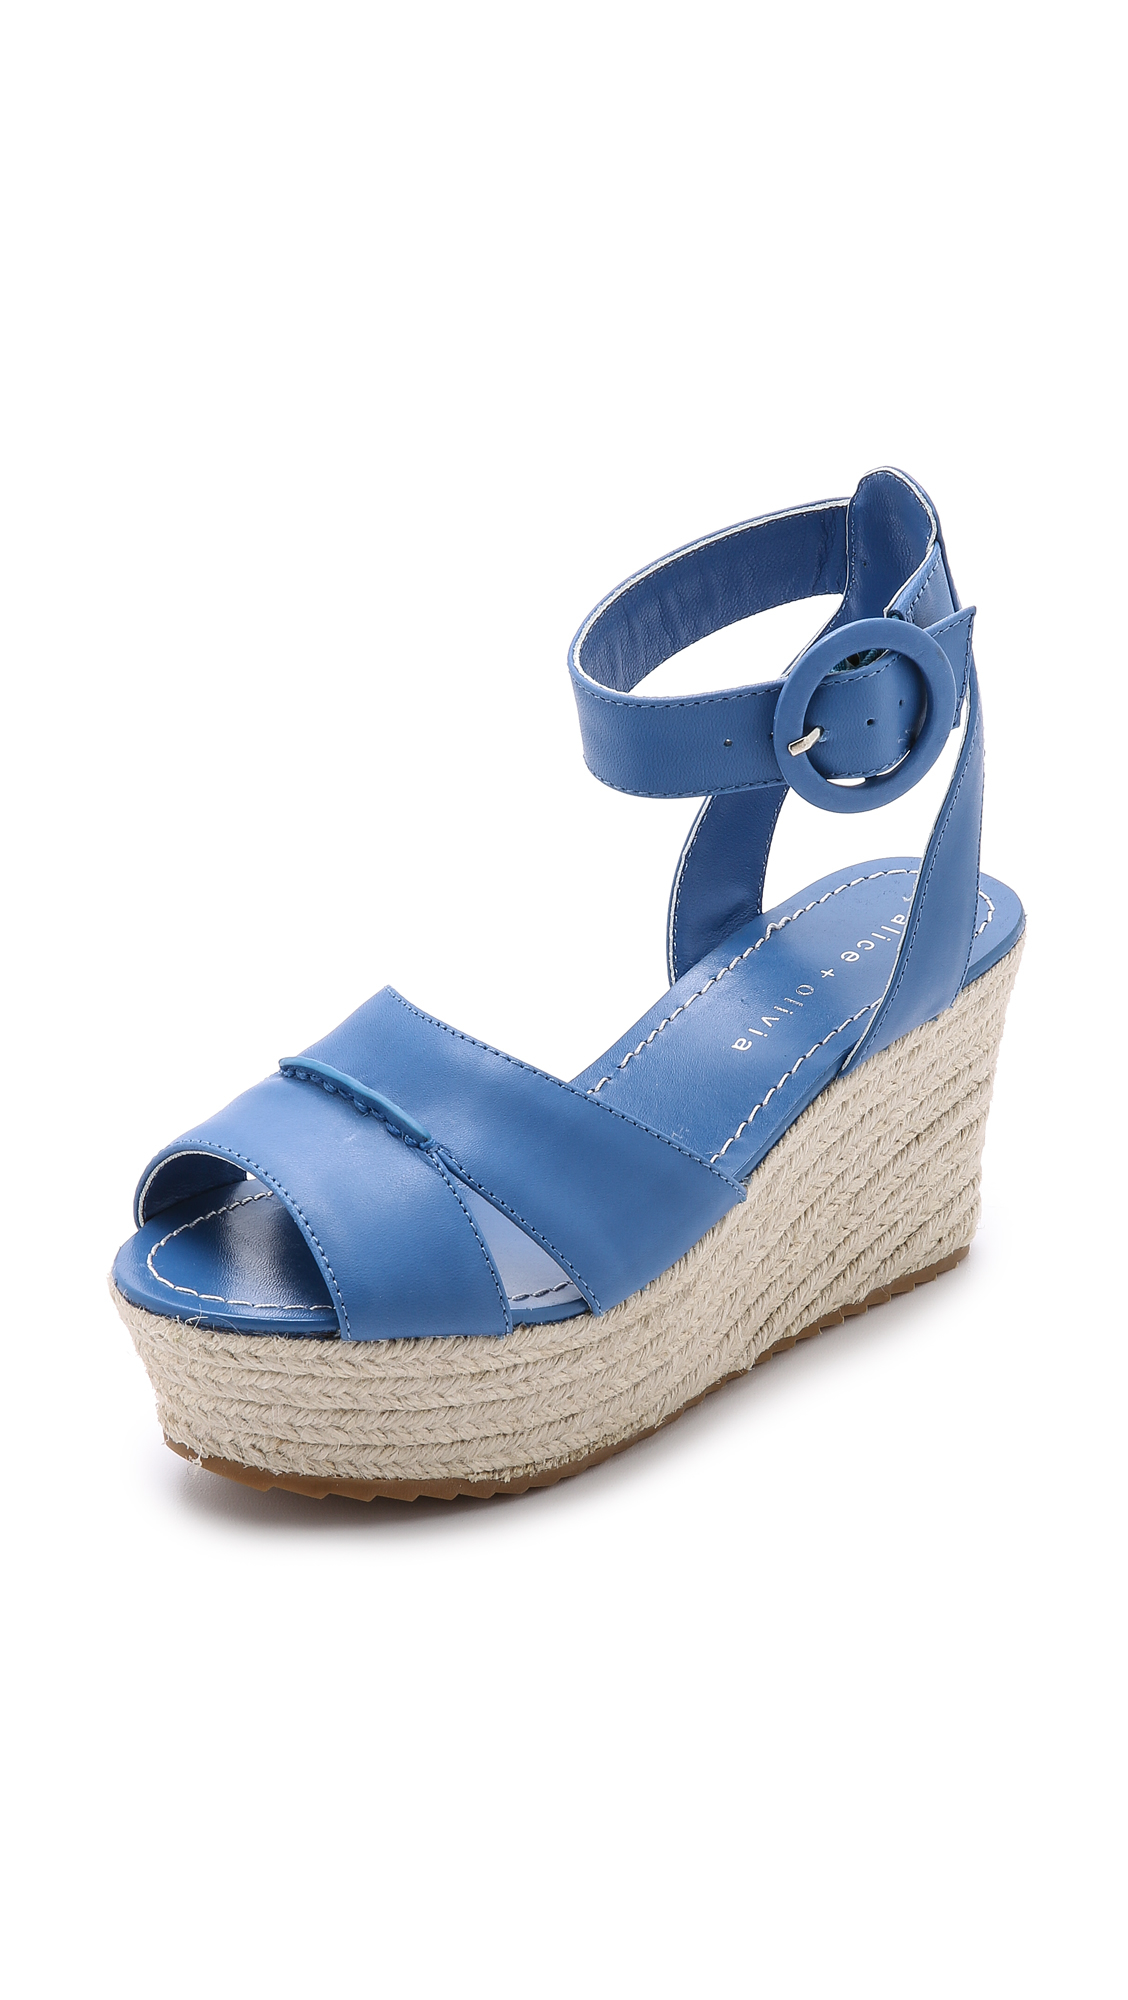 roberta leather espadrille wedge sandals in